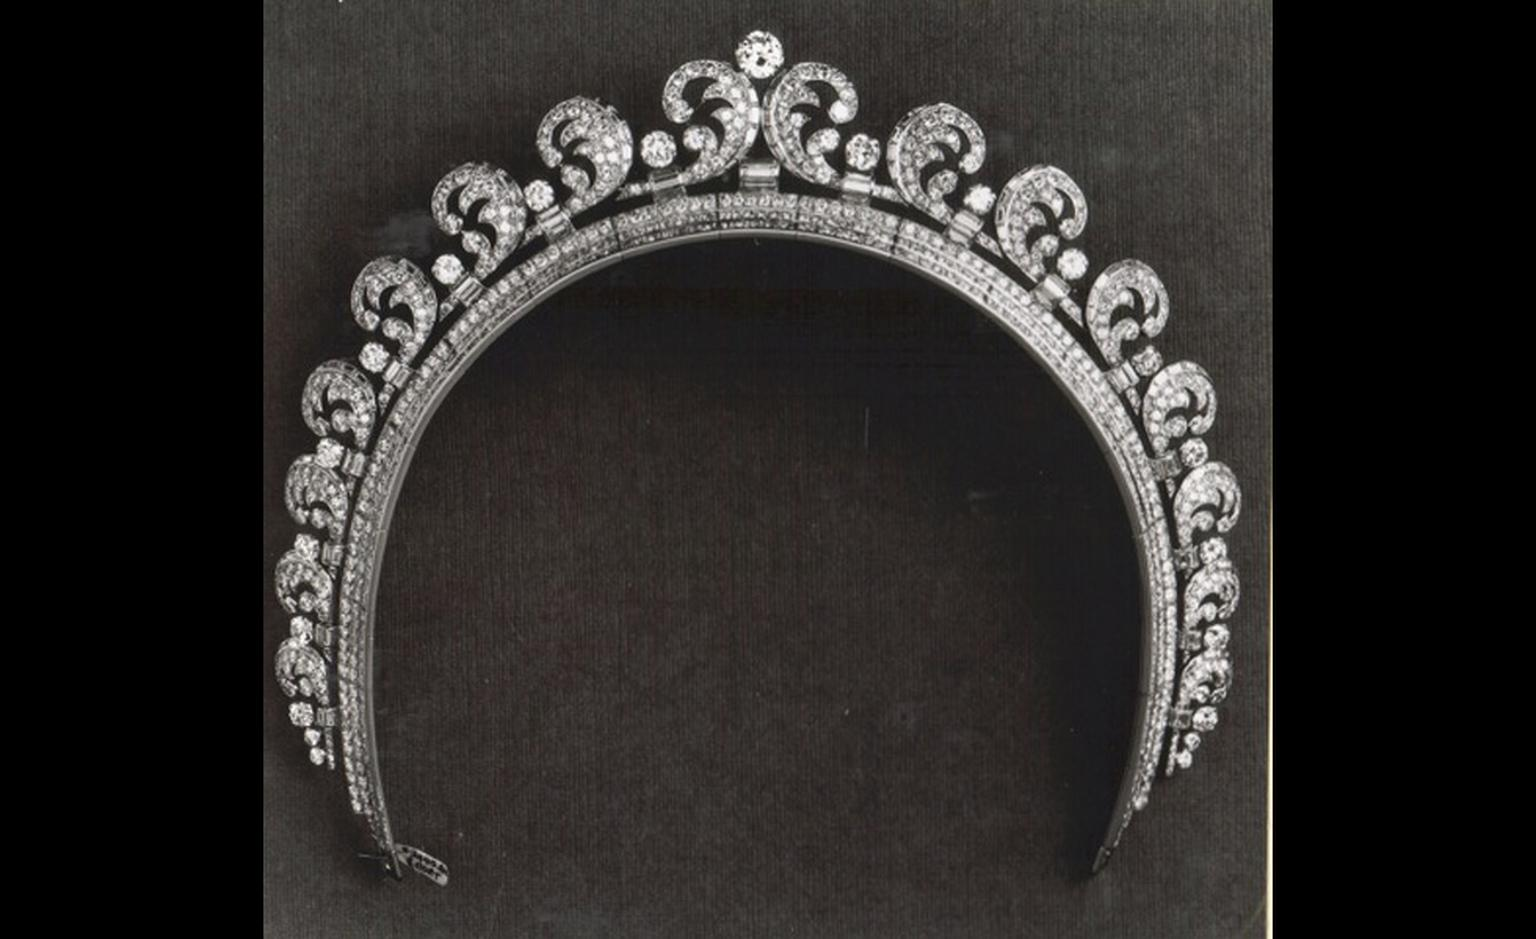 The Cartier Halo diamond tiara worn by Kate Middleton on the occasion of her wedding to Prince William. The tiara was made in Cartier's London workshops and is set with almost 800 diamonds.